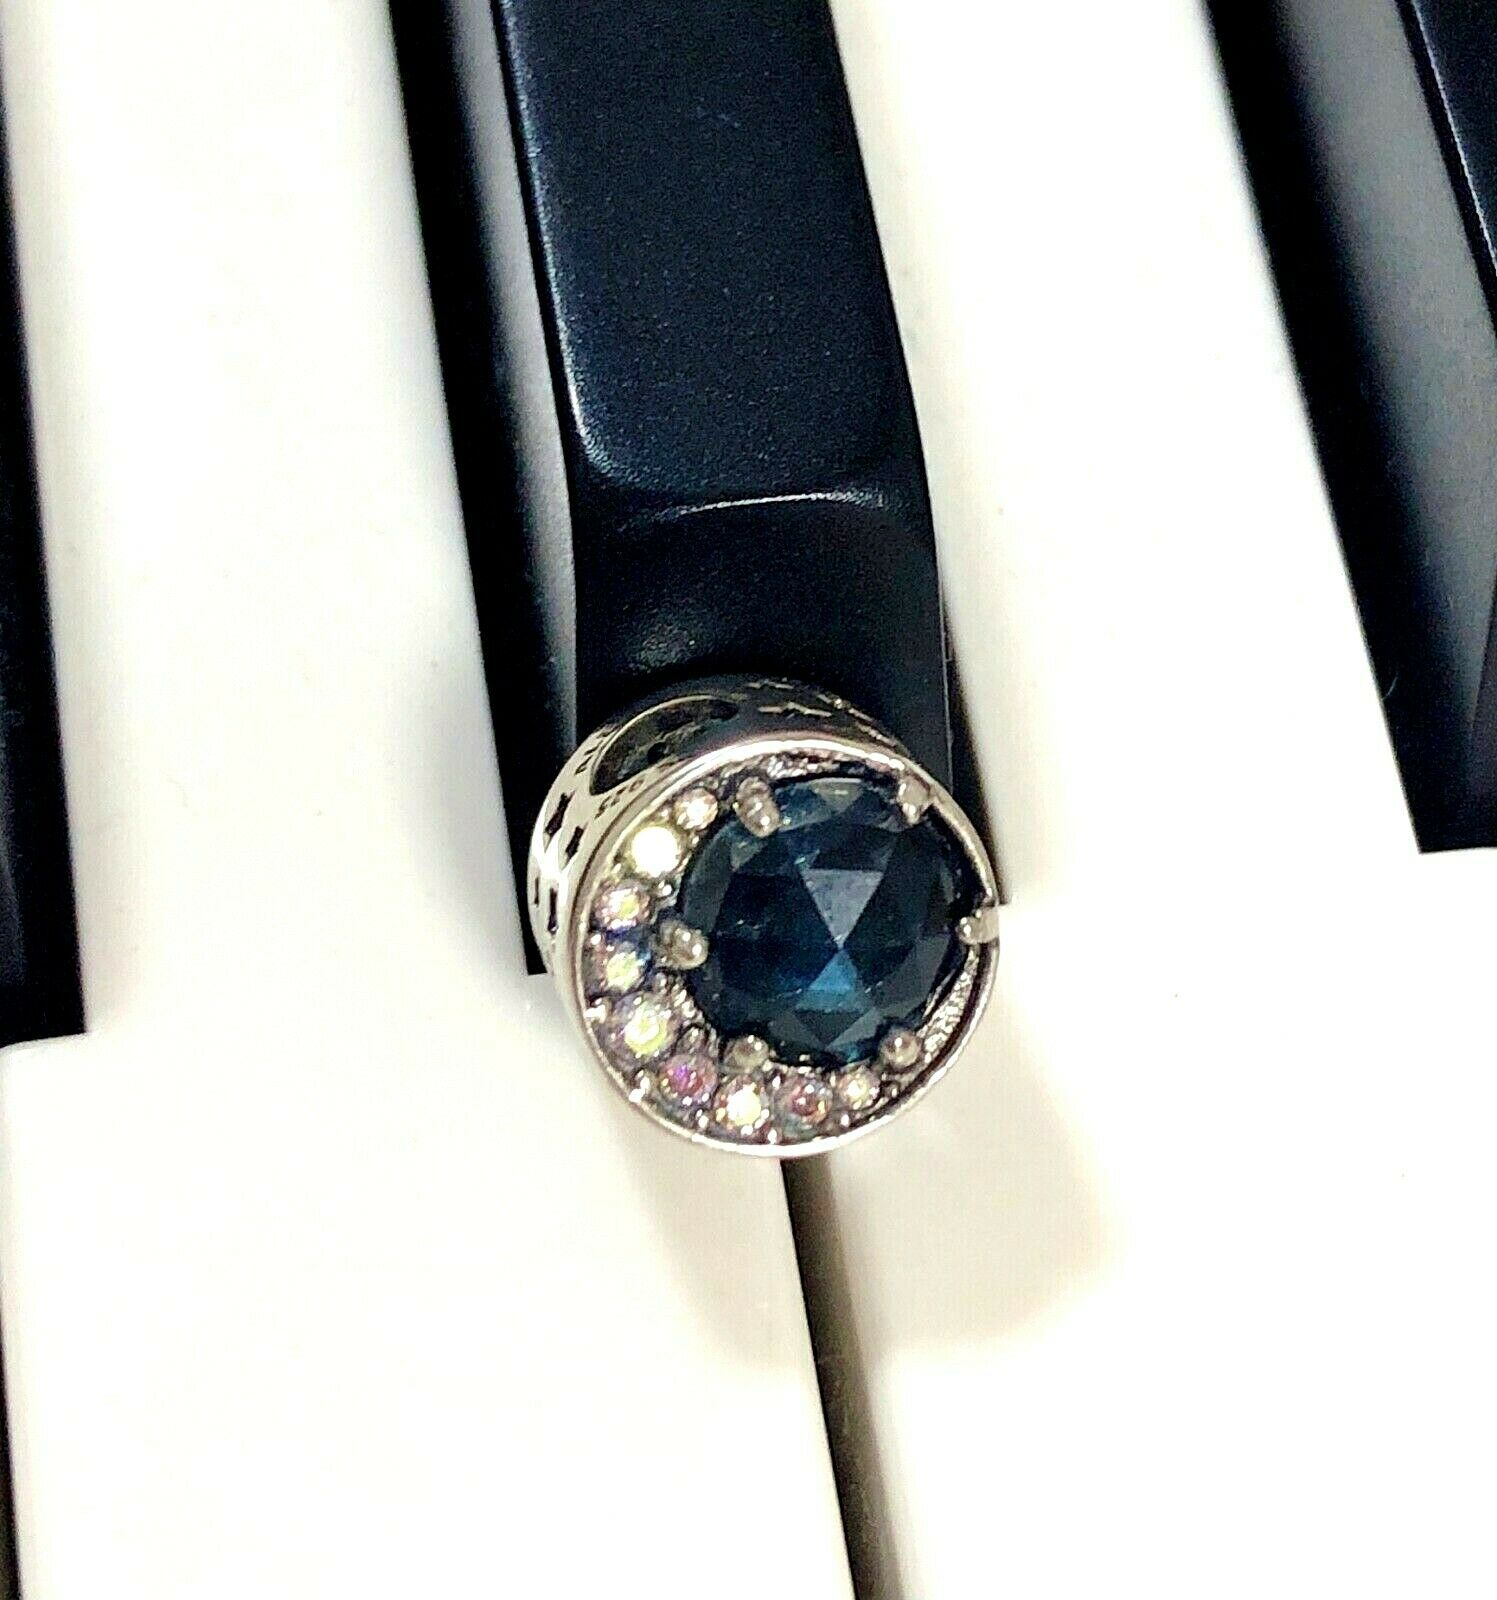 Pre-owned Authentic Pandora Silver CHARM BEAD Moon And Night Sky Blue 798524 - $15.00